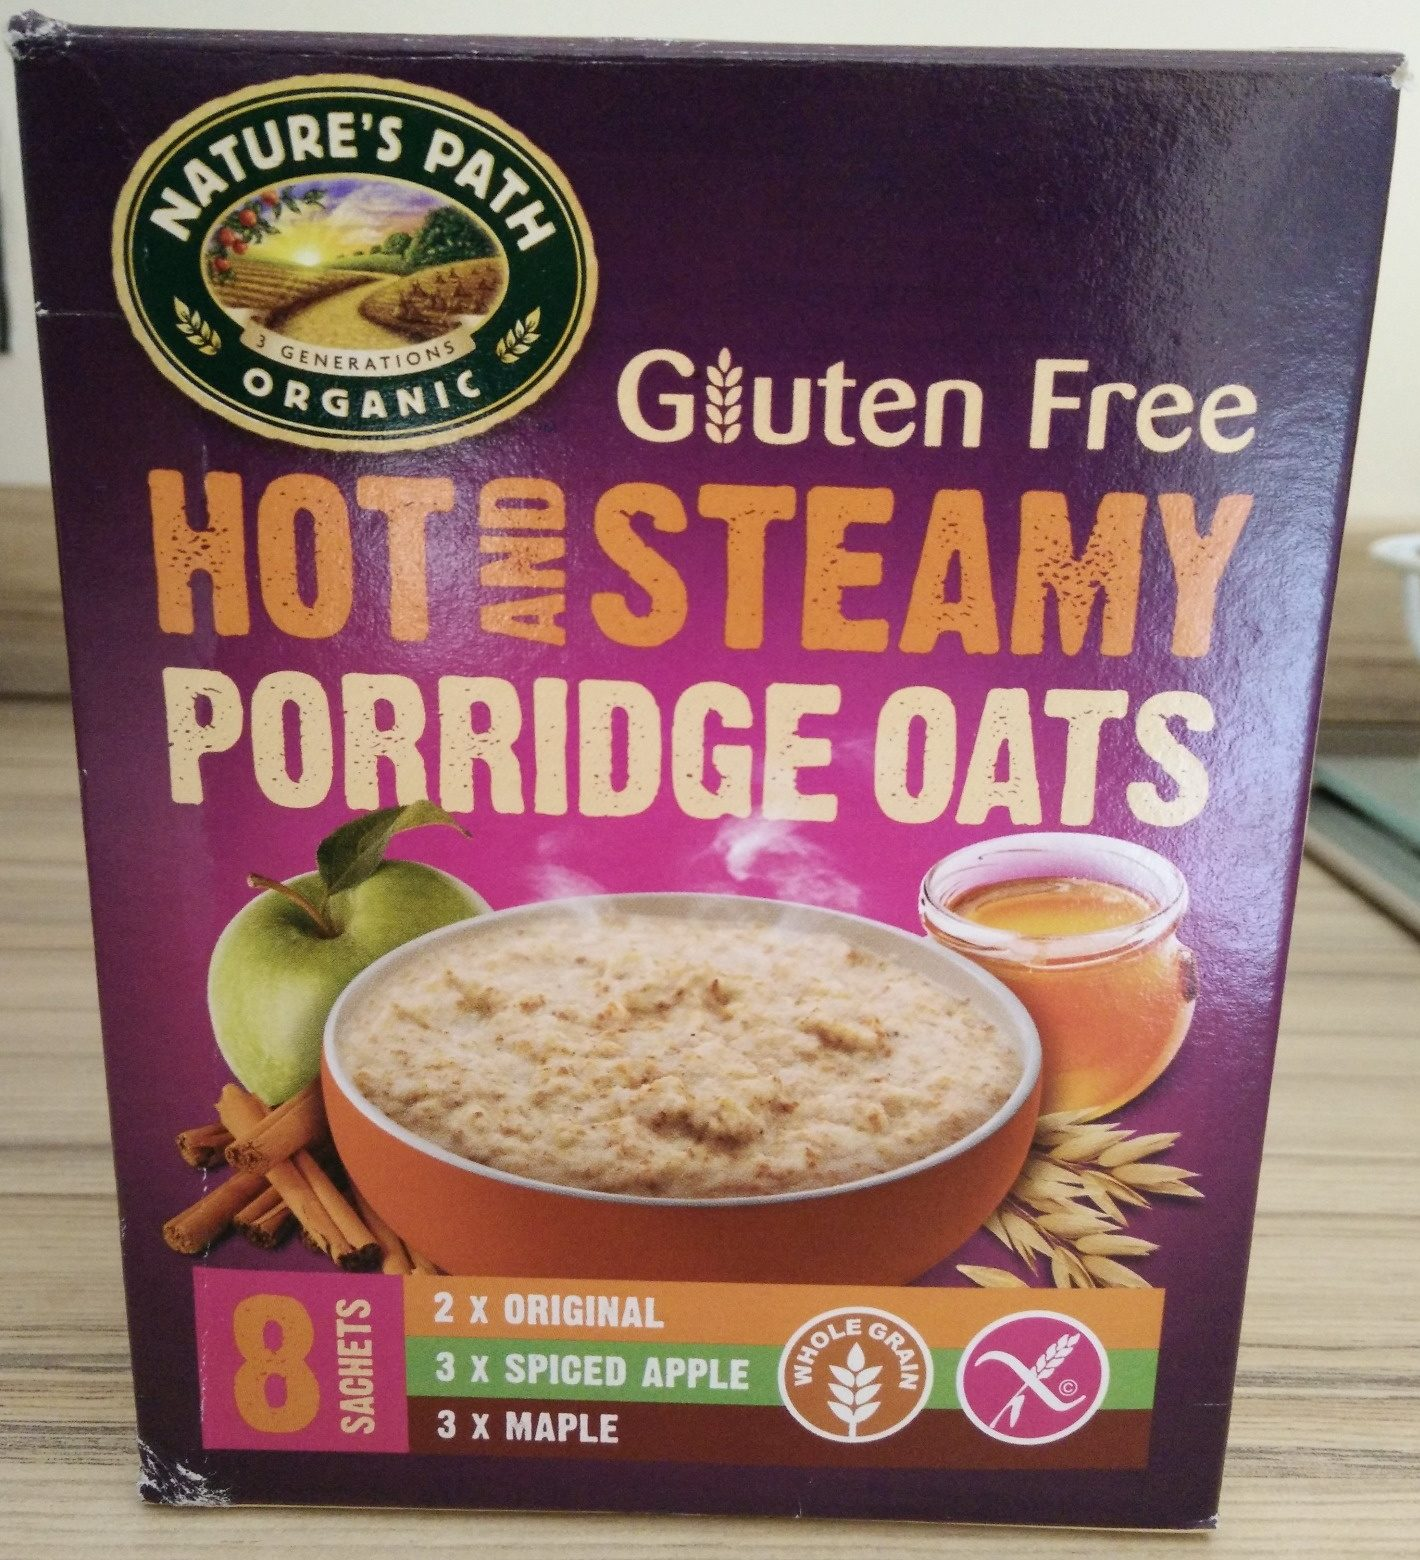 Hot & Steamy Porridge Oats - Product